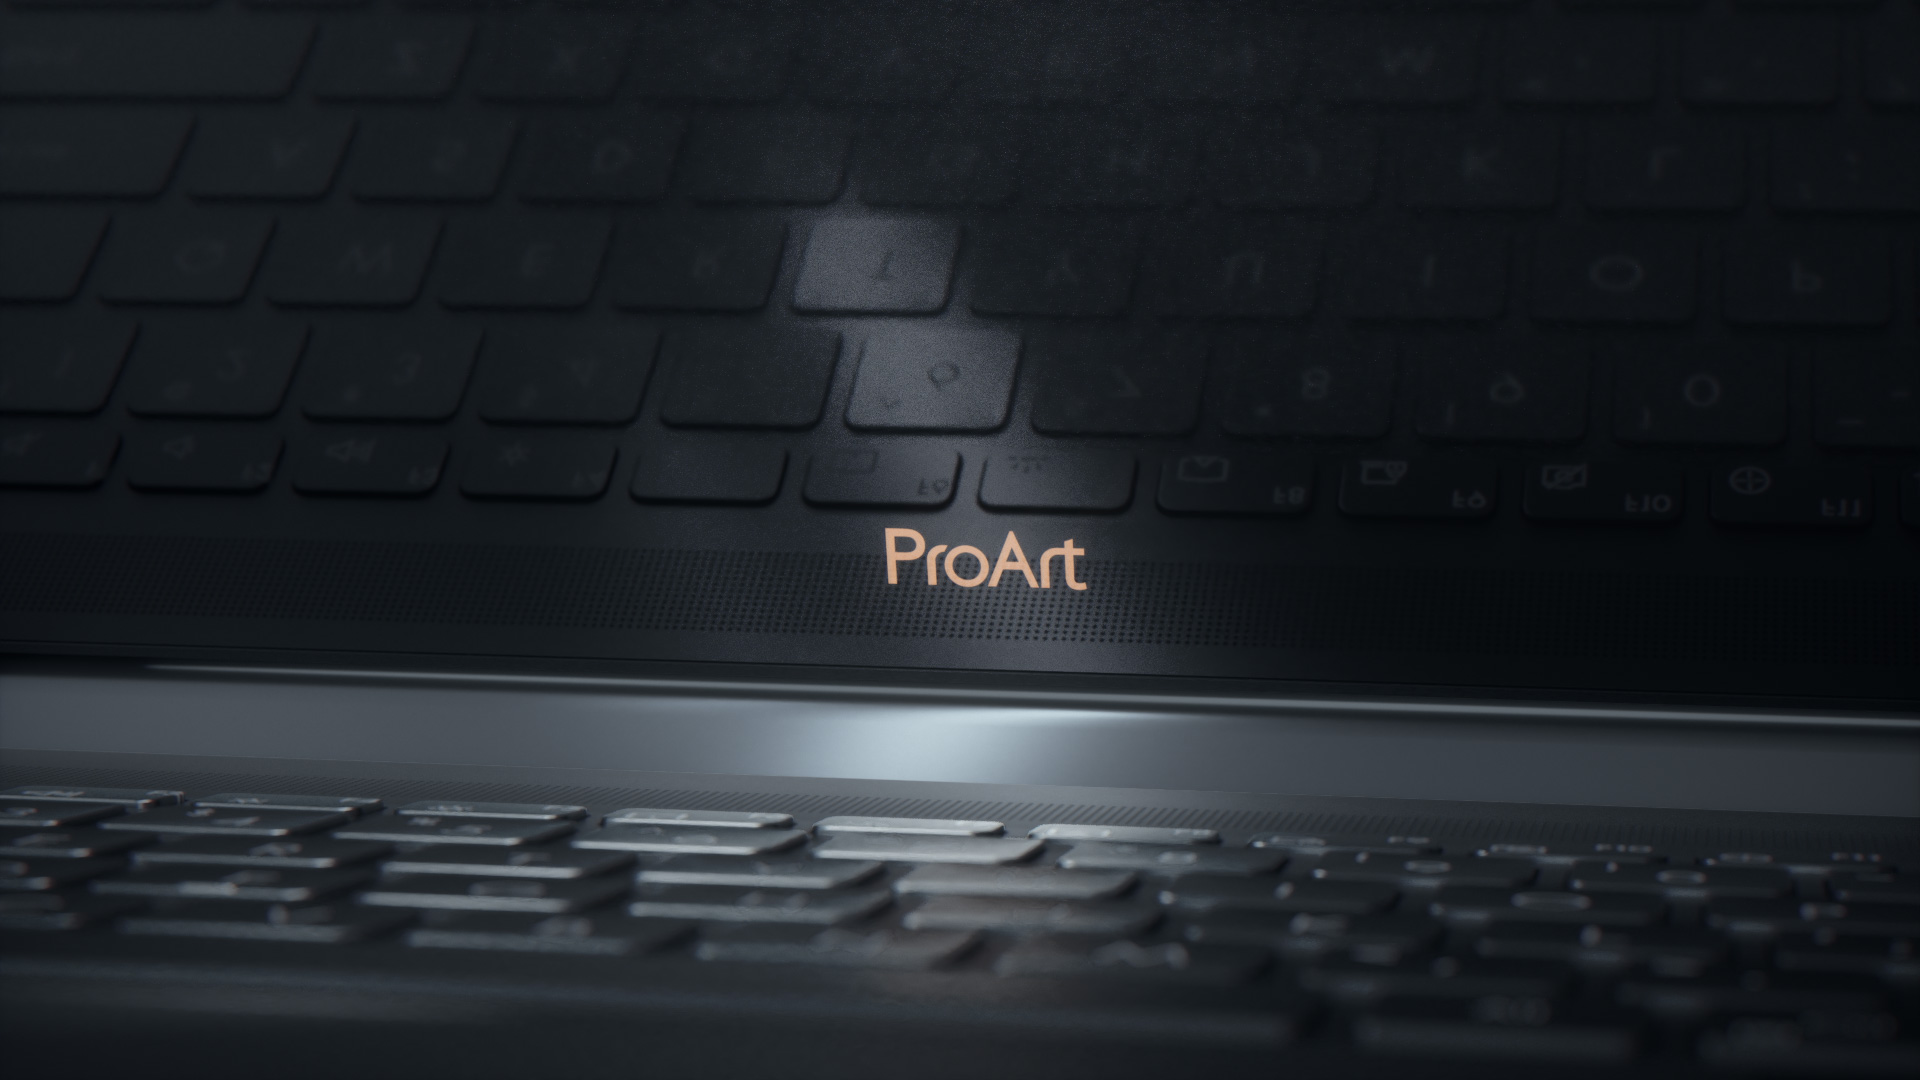 W590 Productvideo Bcopy Proart+asus+intel (nosub) 500